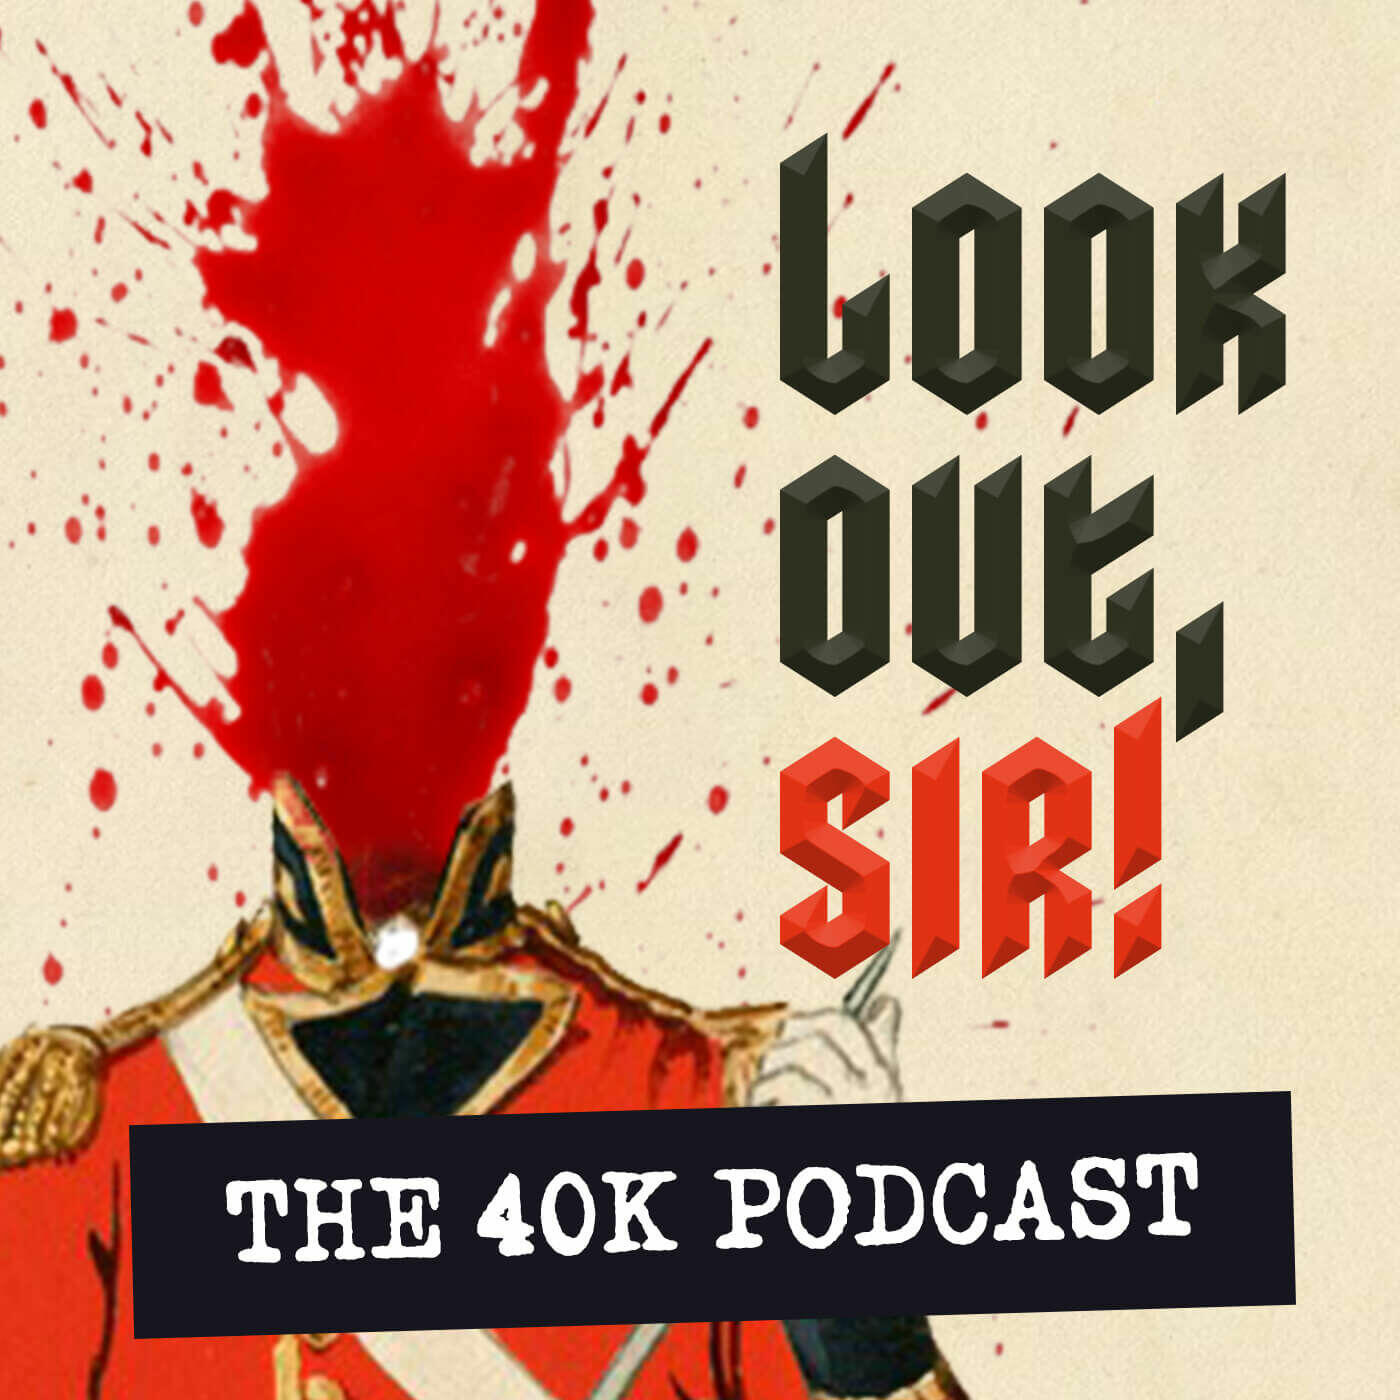 Listen to the Look Out, Sir! 40k Episode - Dan's 40k GT